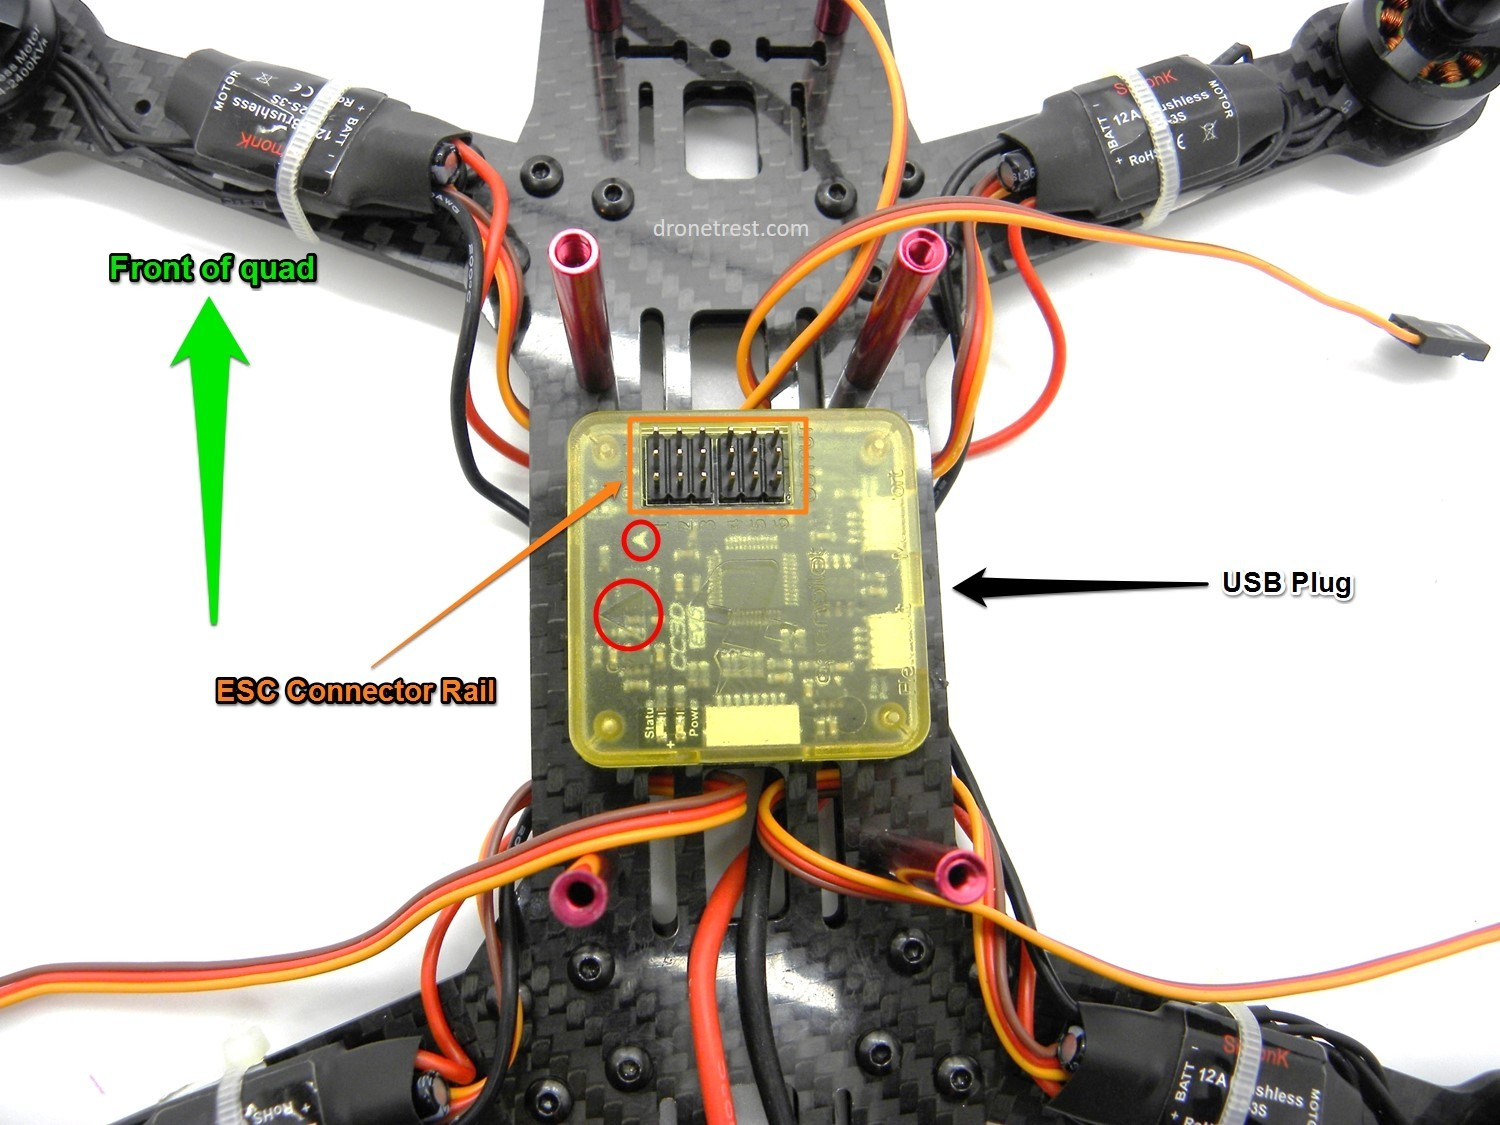 Quadcopter Wiring Diagram Cc3d : Qav zmr assembly build guide guides dronetrest